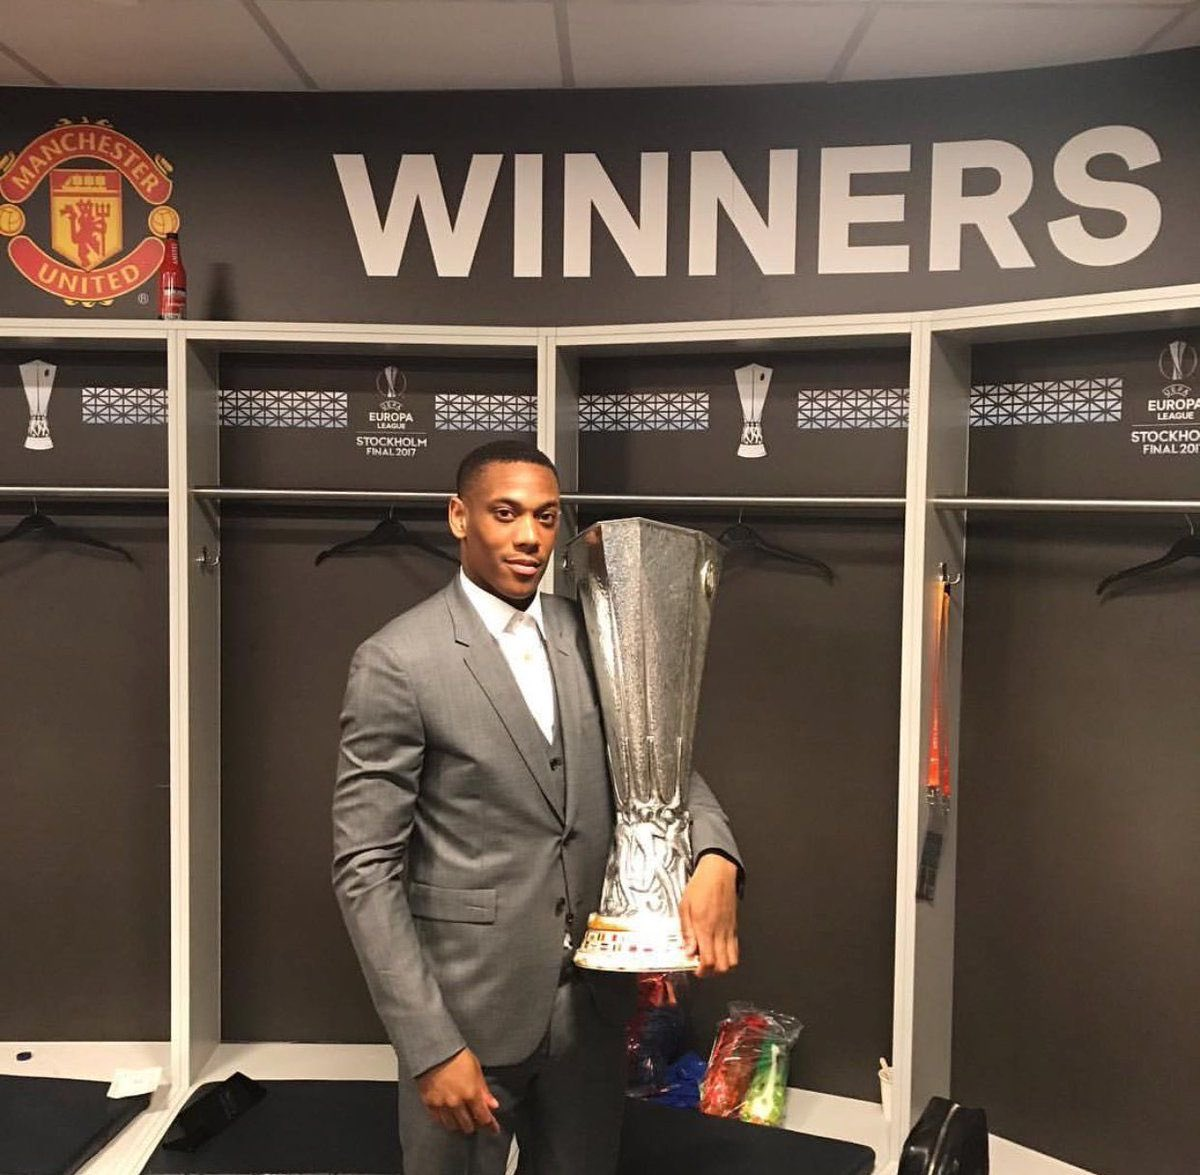 Martial (3) has more career trophies than Aubameyang (2) despite being 7 years younger  All those backflip celebrations for very little in return https://t.co/FaeHNB59GY https://t.co/Gc0CYC7iz1